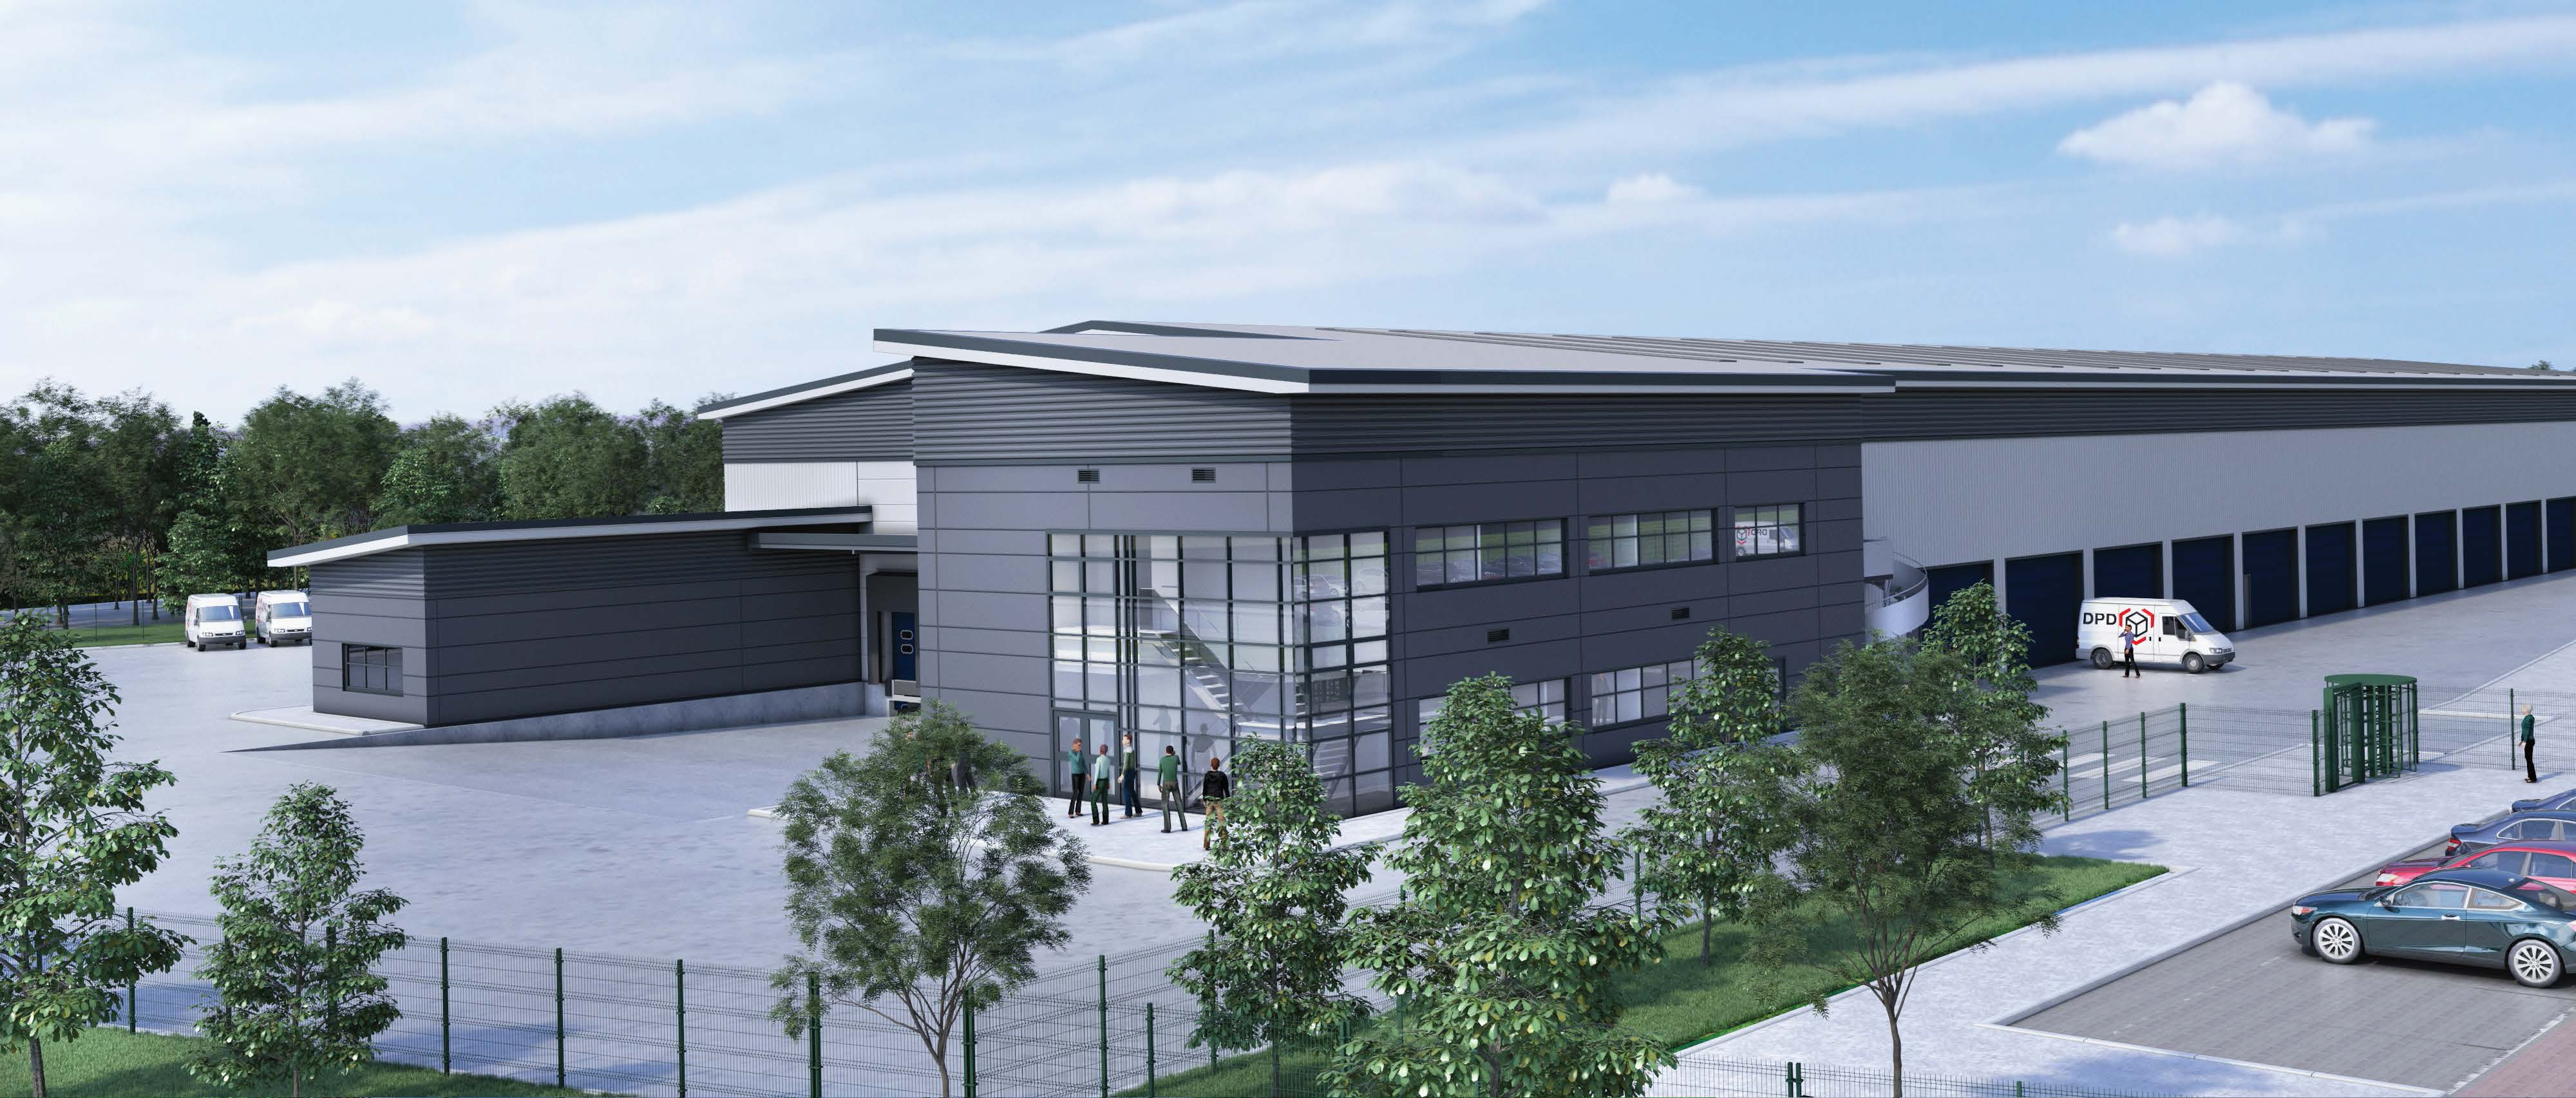 new dpd distribution centre to create up to 100 jobs. Black Bedroom Furniture Sets. Home Design Ideas